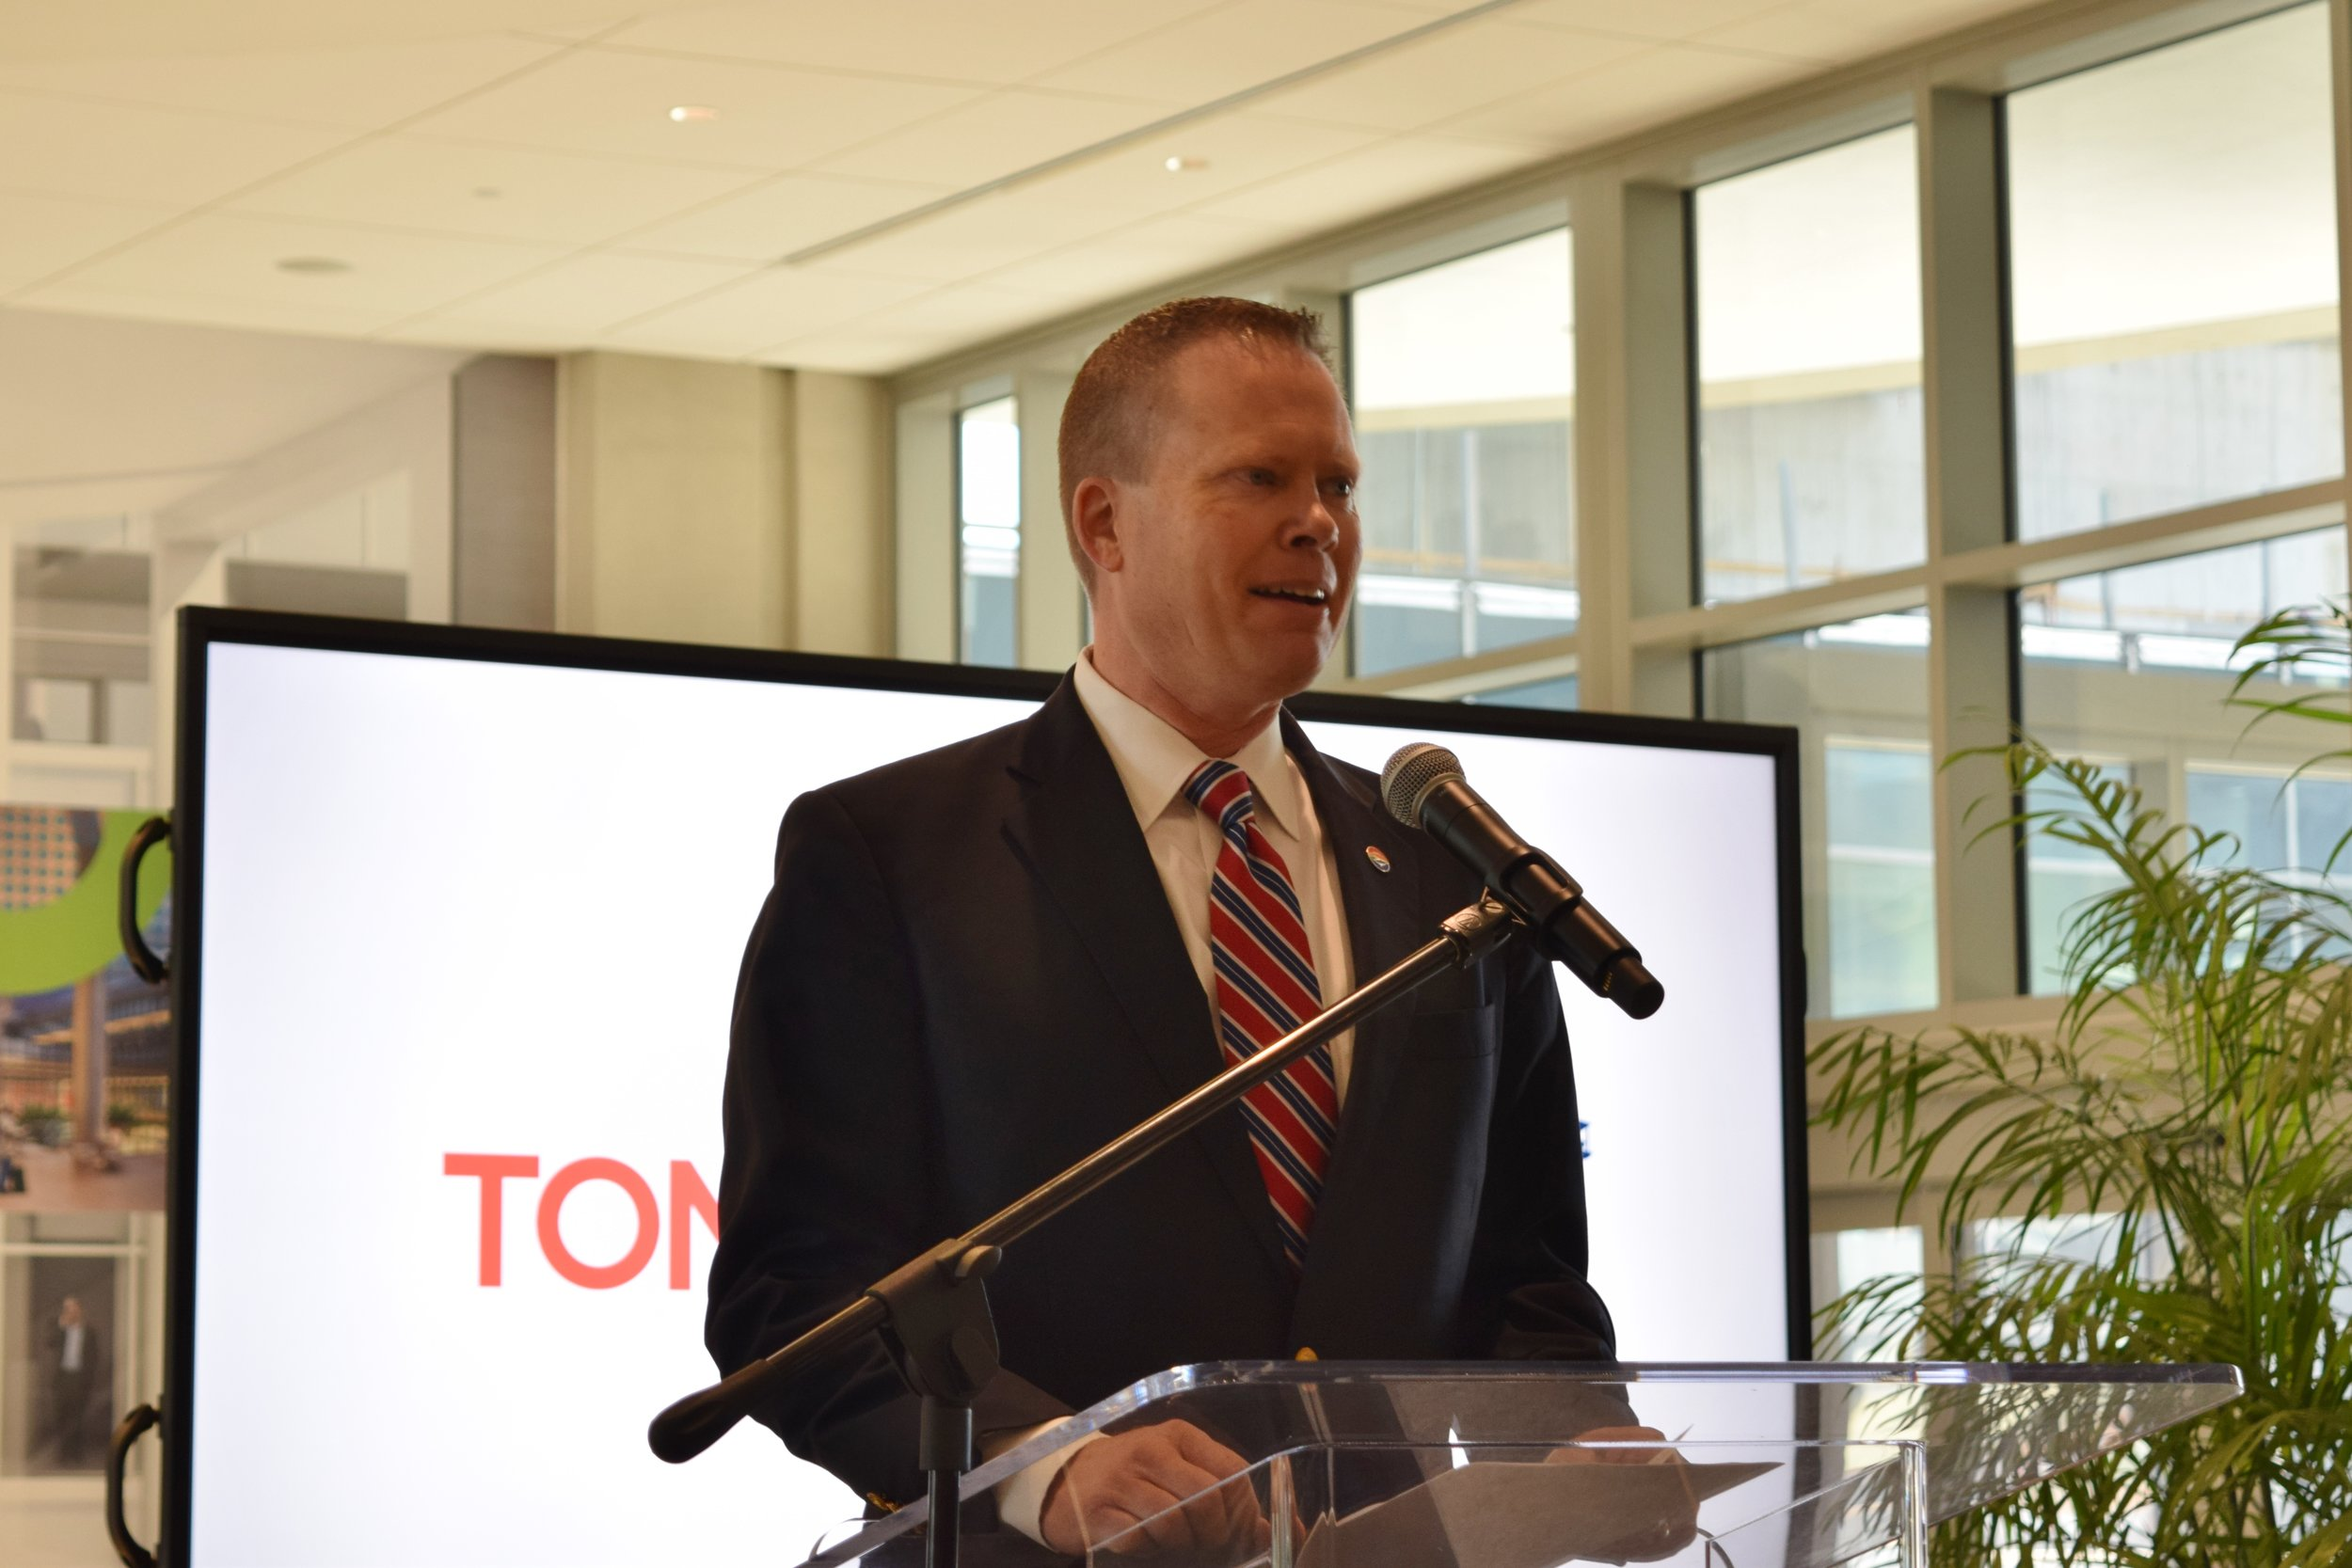 Chris Minner welcoming Press Confeence attendees to Tampa International Airport, 9 May '17.JPG